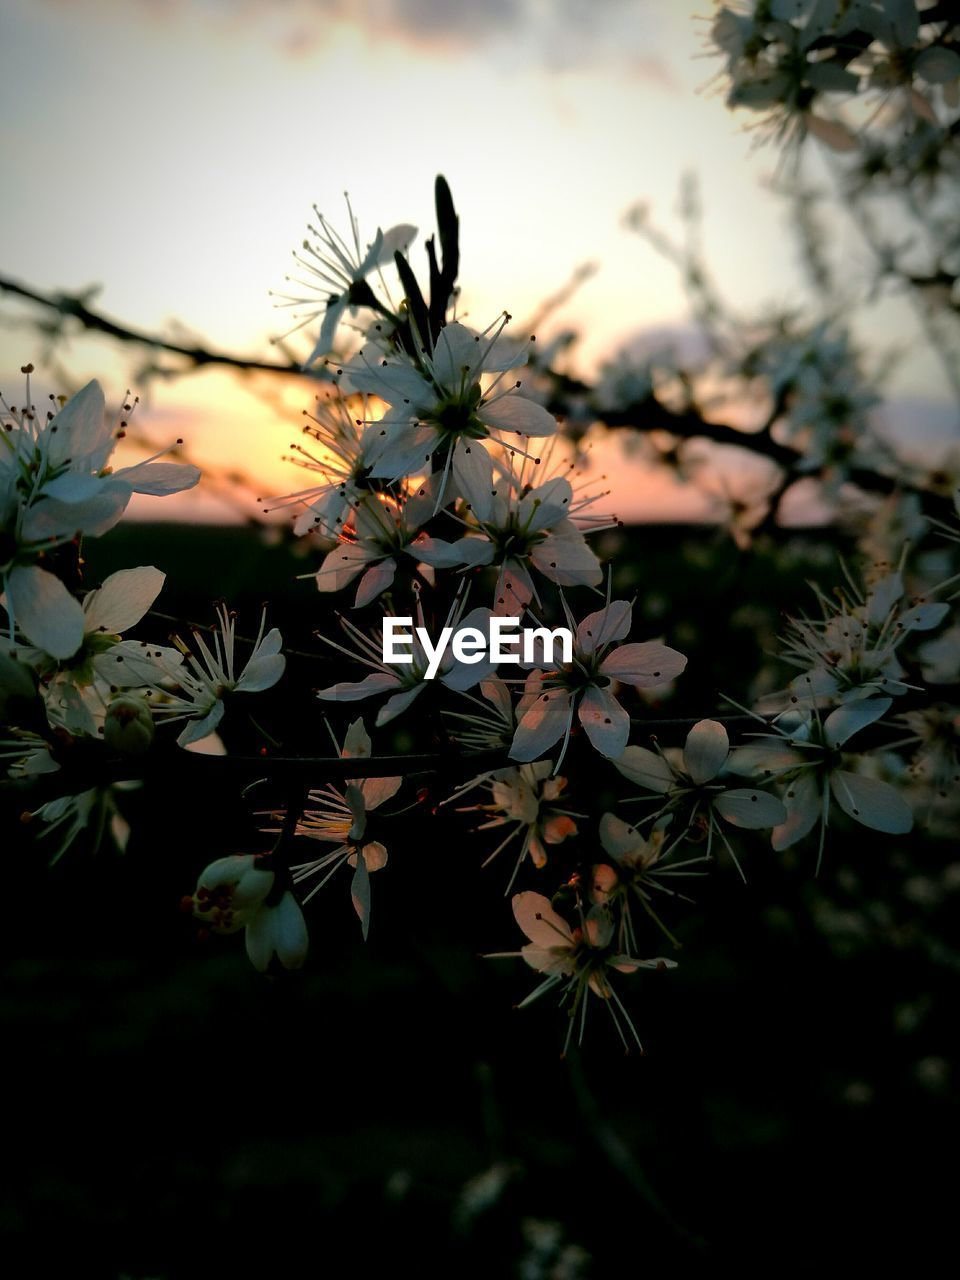 flower, nature, plant, beauty in nature, growth, no people, outdoors, sunset, fragility, freshness, close-up, flower head, blooming, day, sky